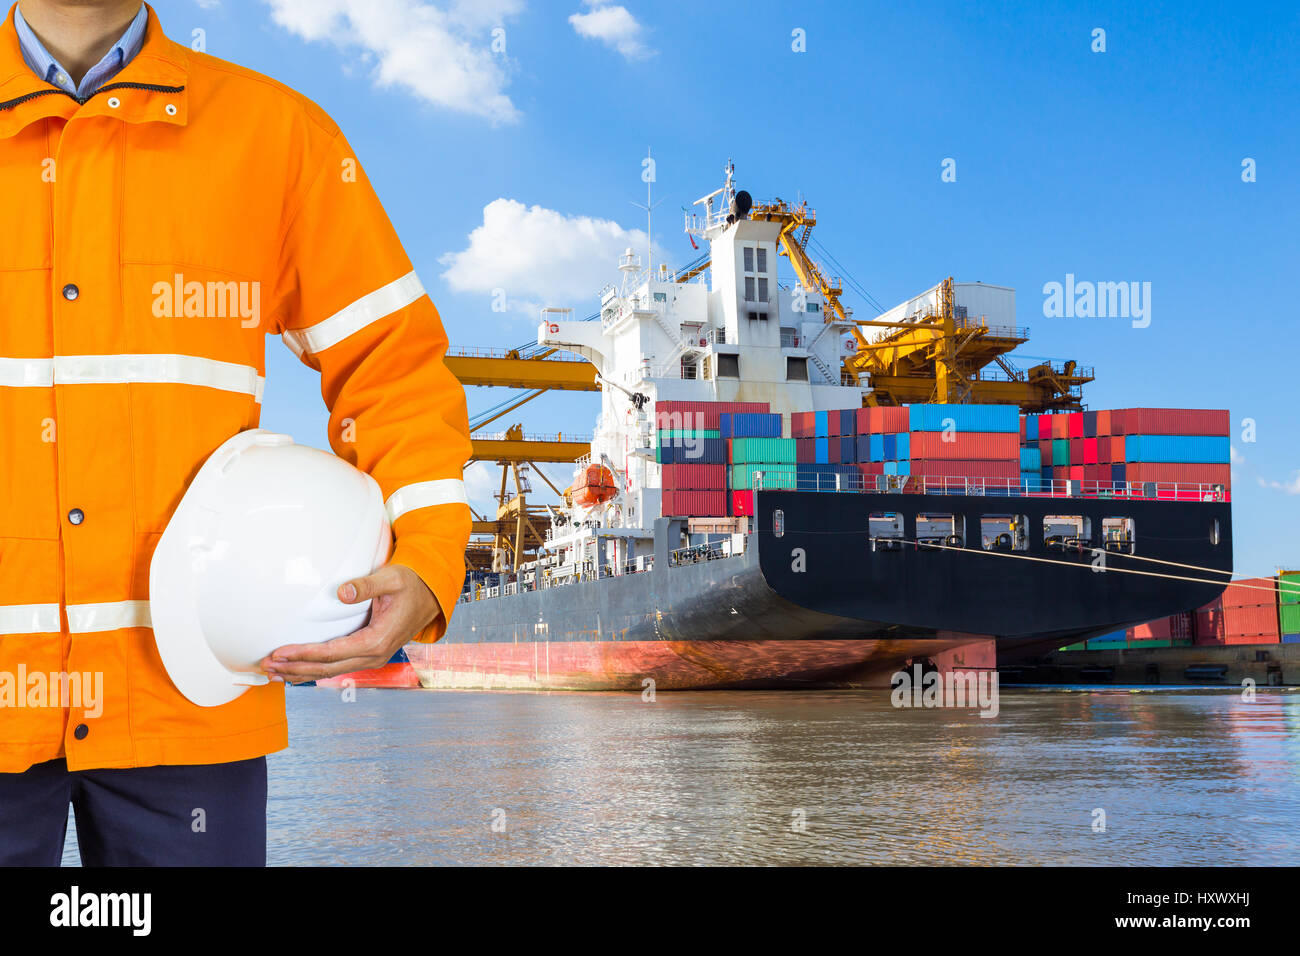 Engineer dockers wearing safety coat and holding a helmet in front of an industrial harbor with cranes and a container - Stock Image